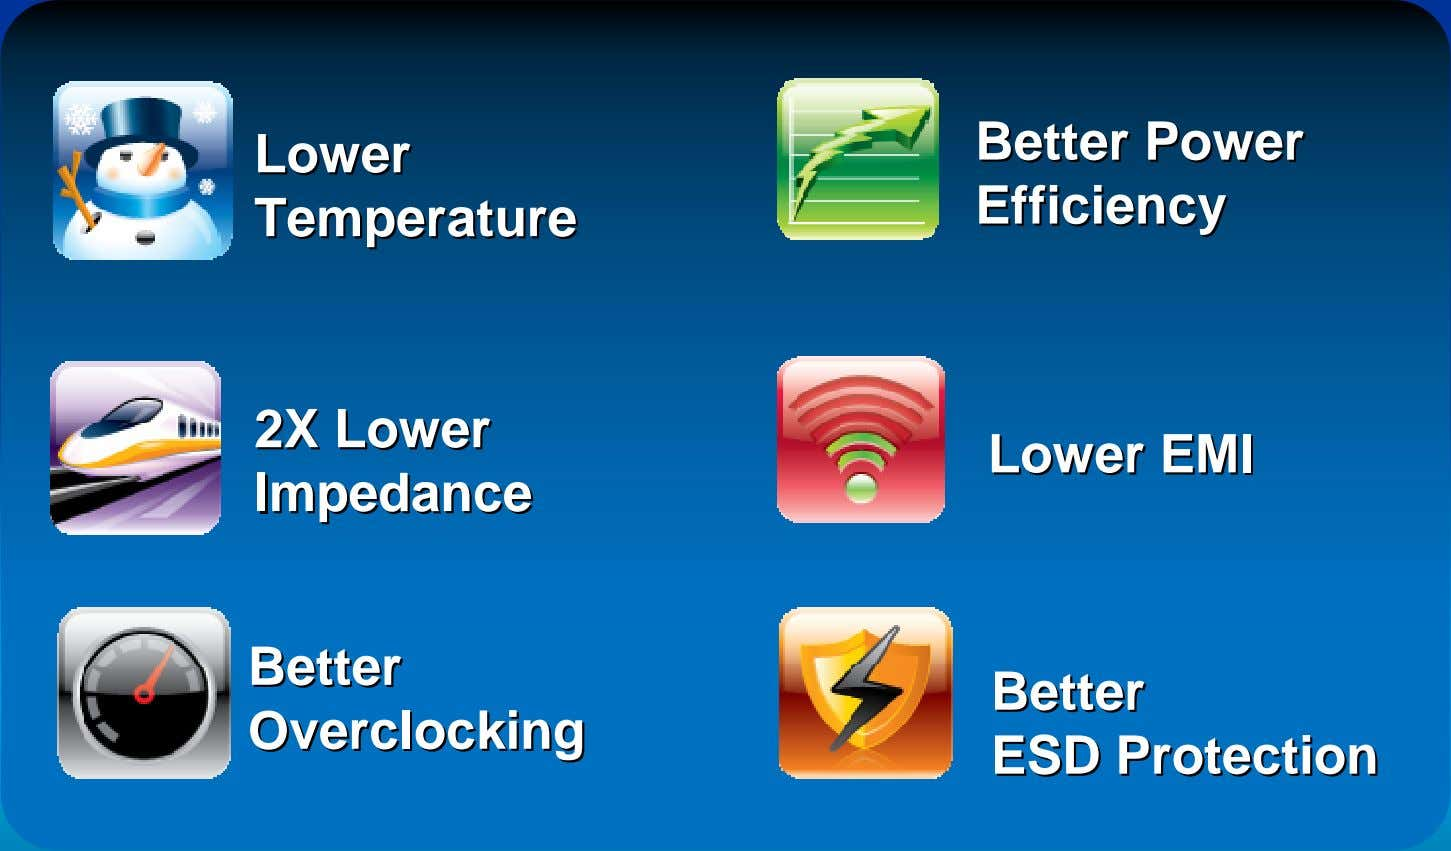 LowerLower BetterBetter PowerPower EfficiencyEfficiency TemperatureTemperature 2X2X LowerLower ImpedanceImpedance